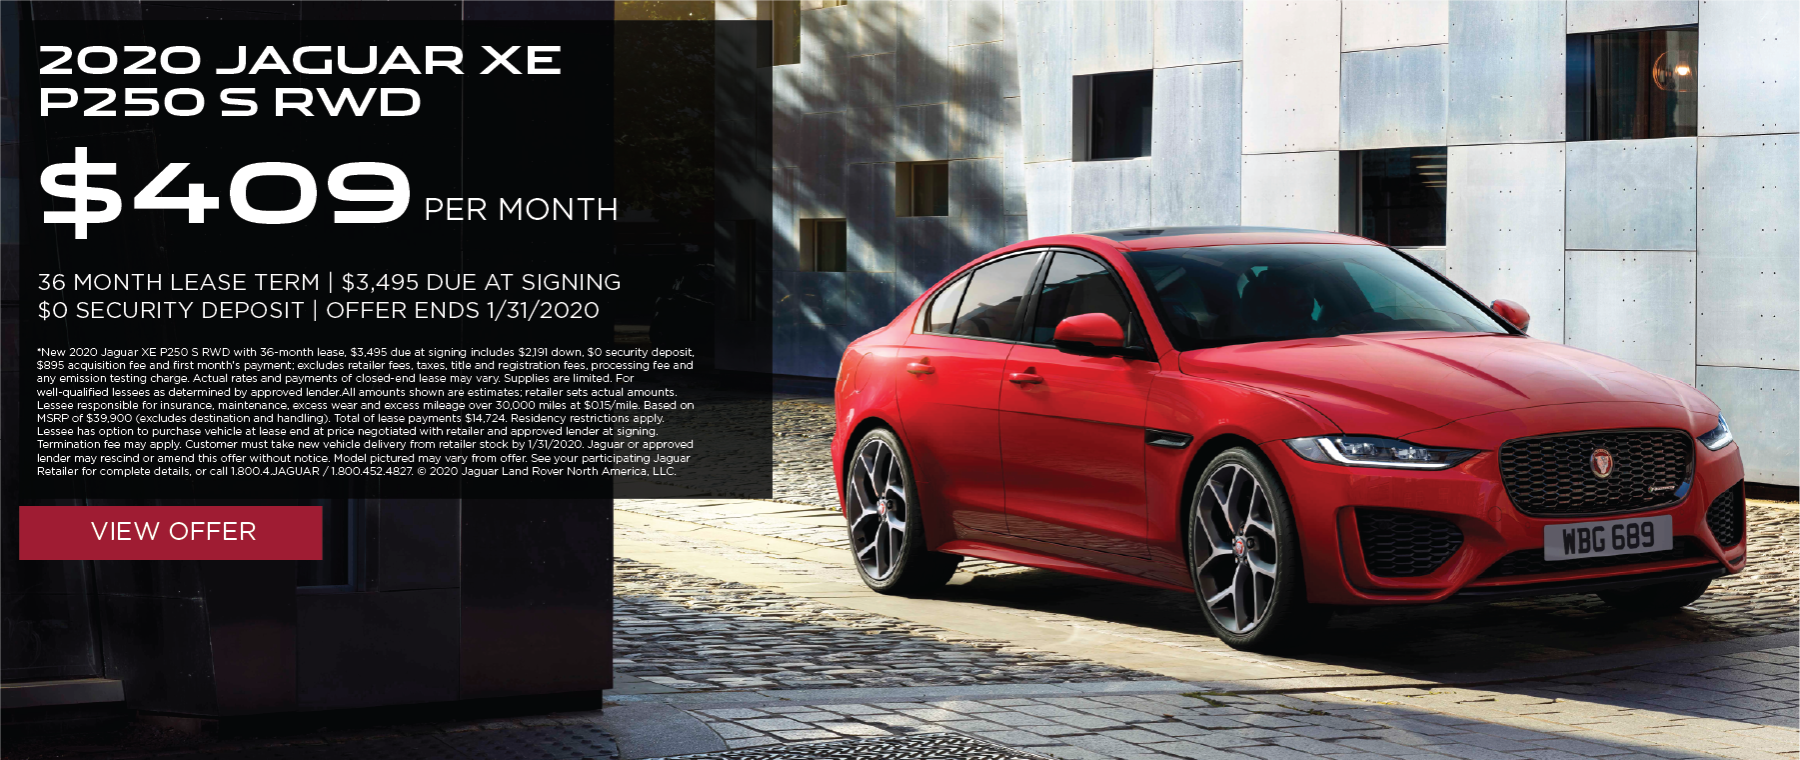 2020 Jaguar XE P250 S RWD | $409/month | 36-month lease | 10,000 miles/year | $3,495 due at signing | $0 security deposit | expires 1/31/2020